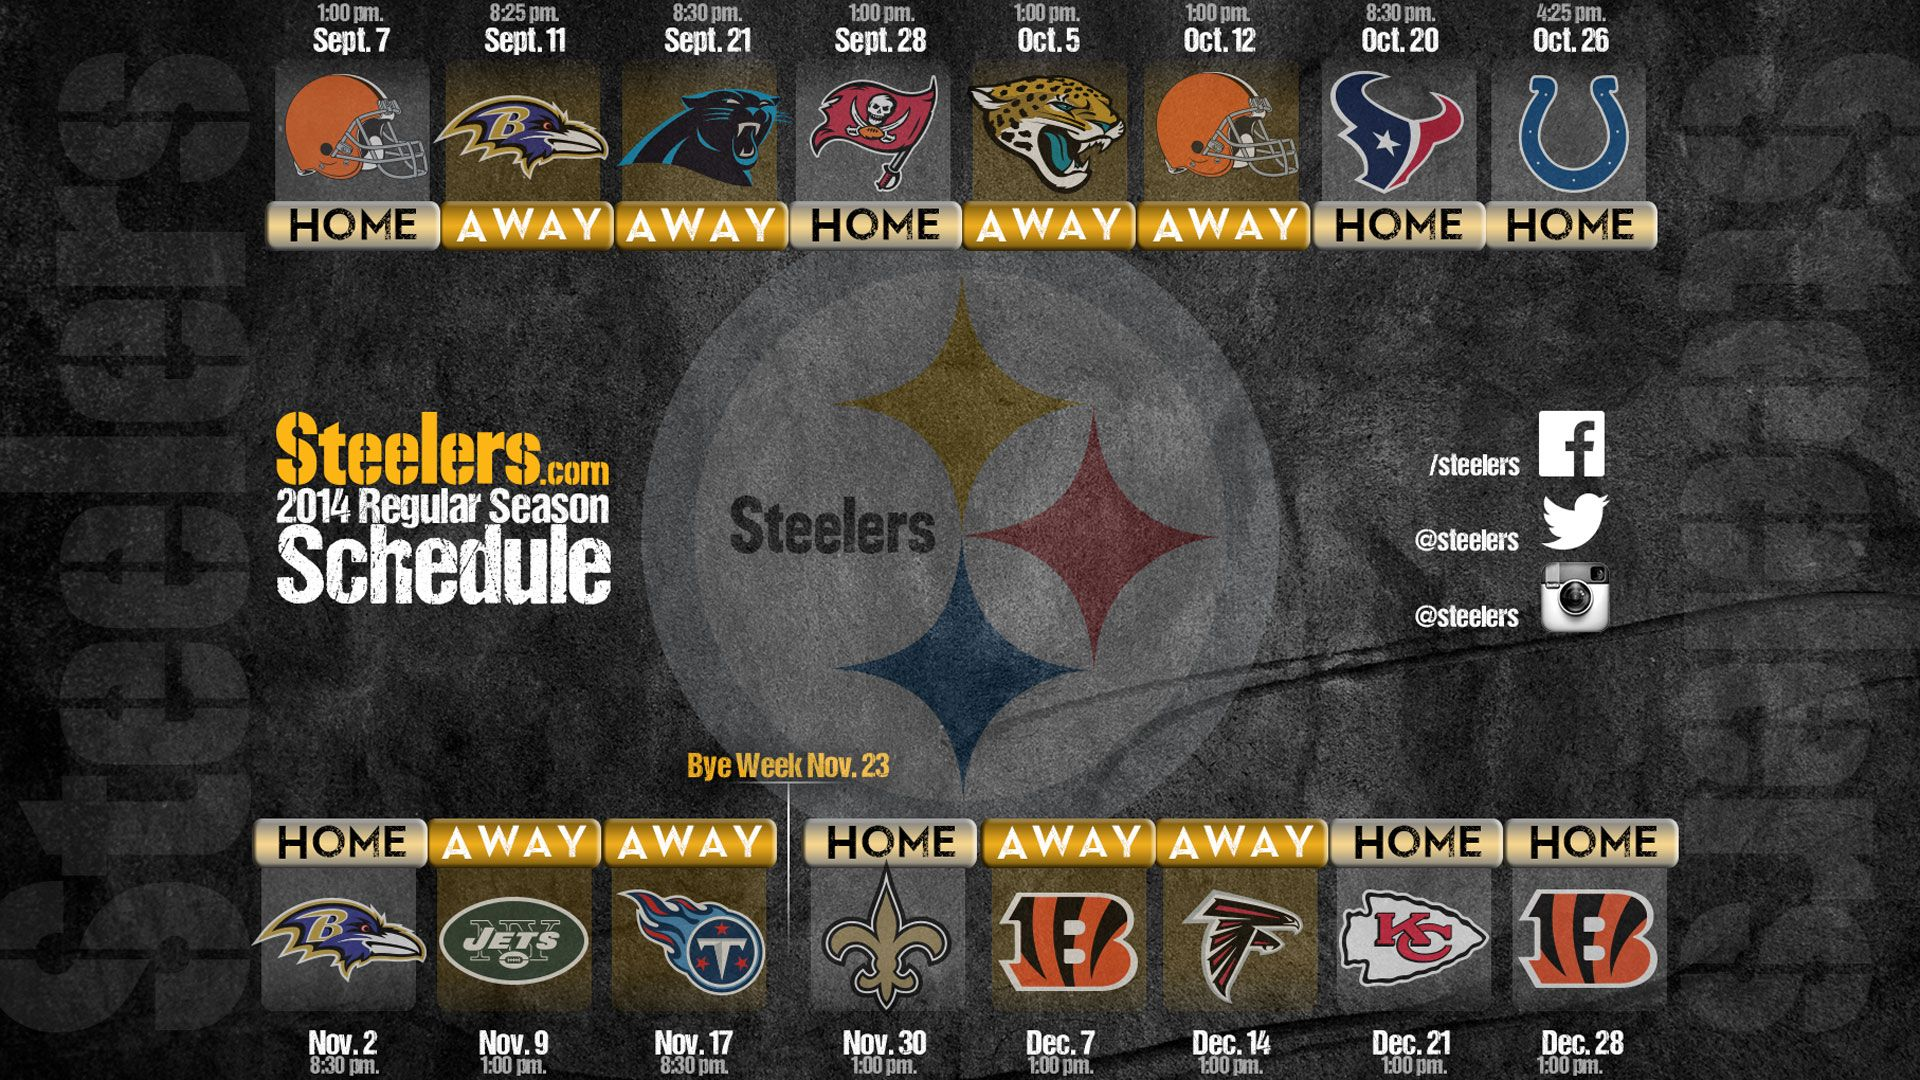 Get The Steelers Schedule On All Your Devices